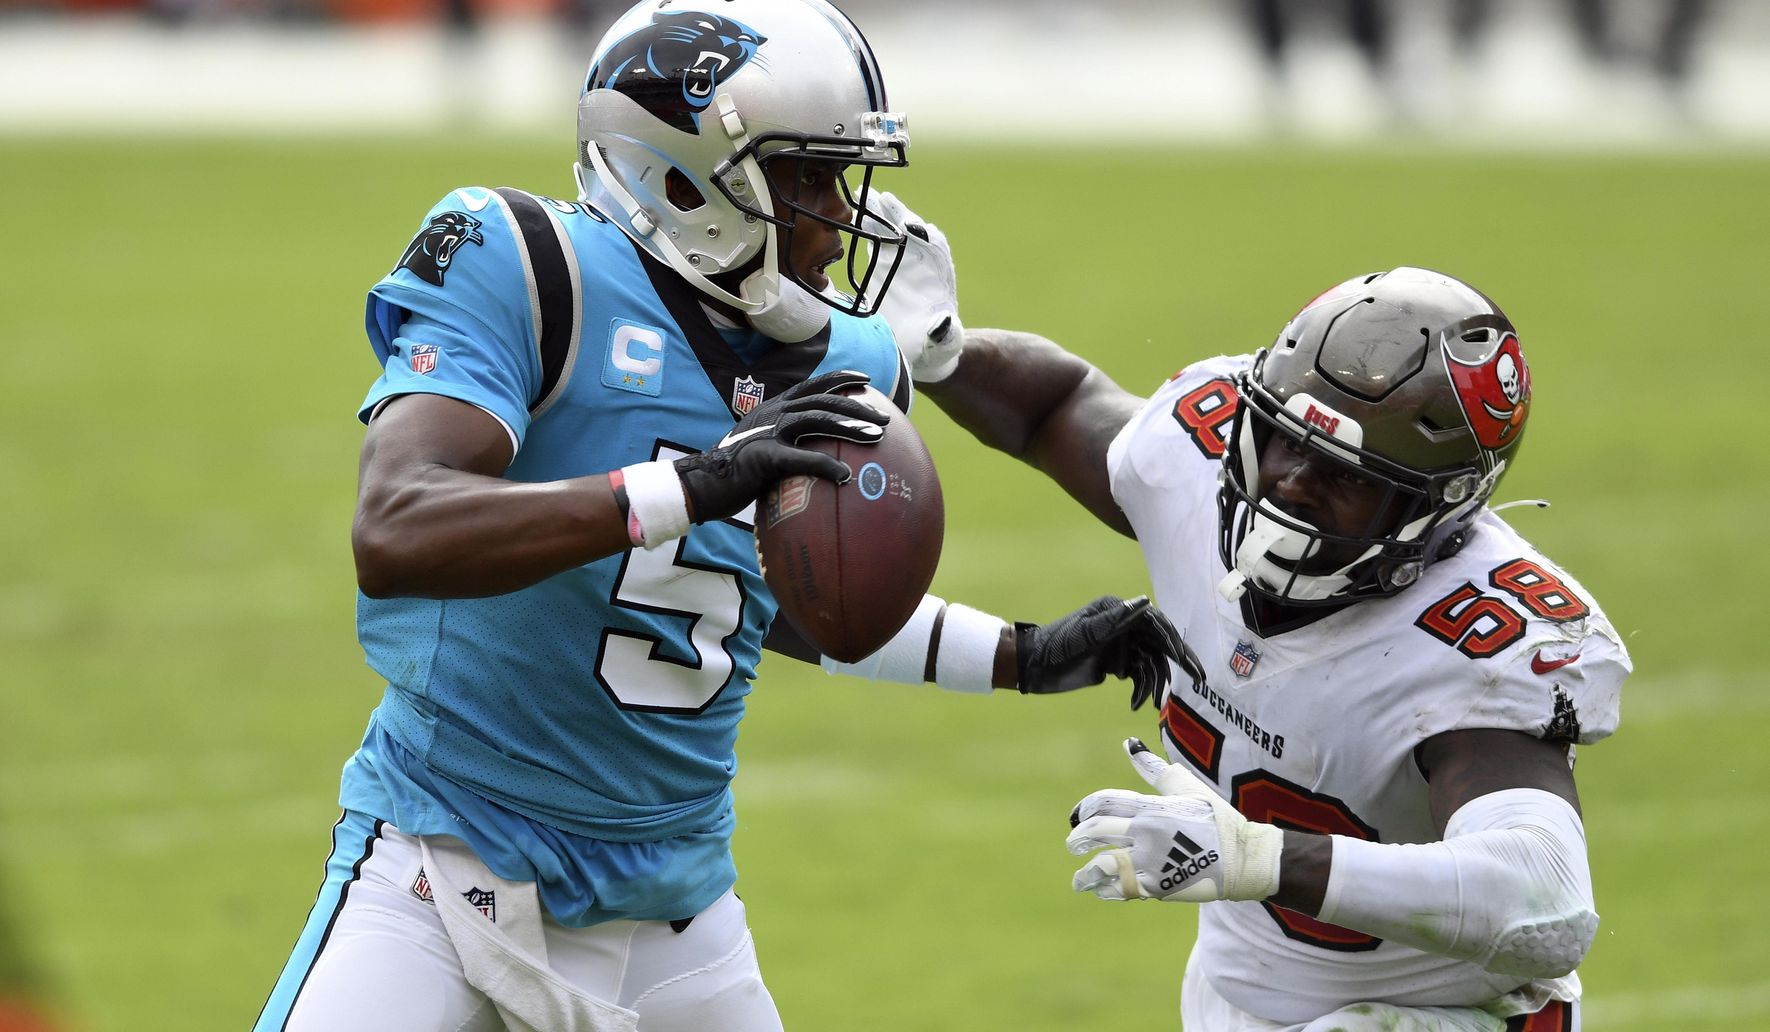 Panthers_buccaneers_football_96391_c0-176-4200-2624_s1770x1032